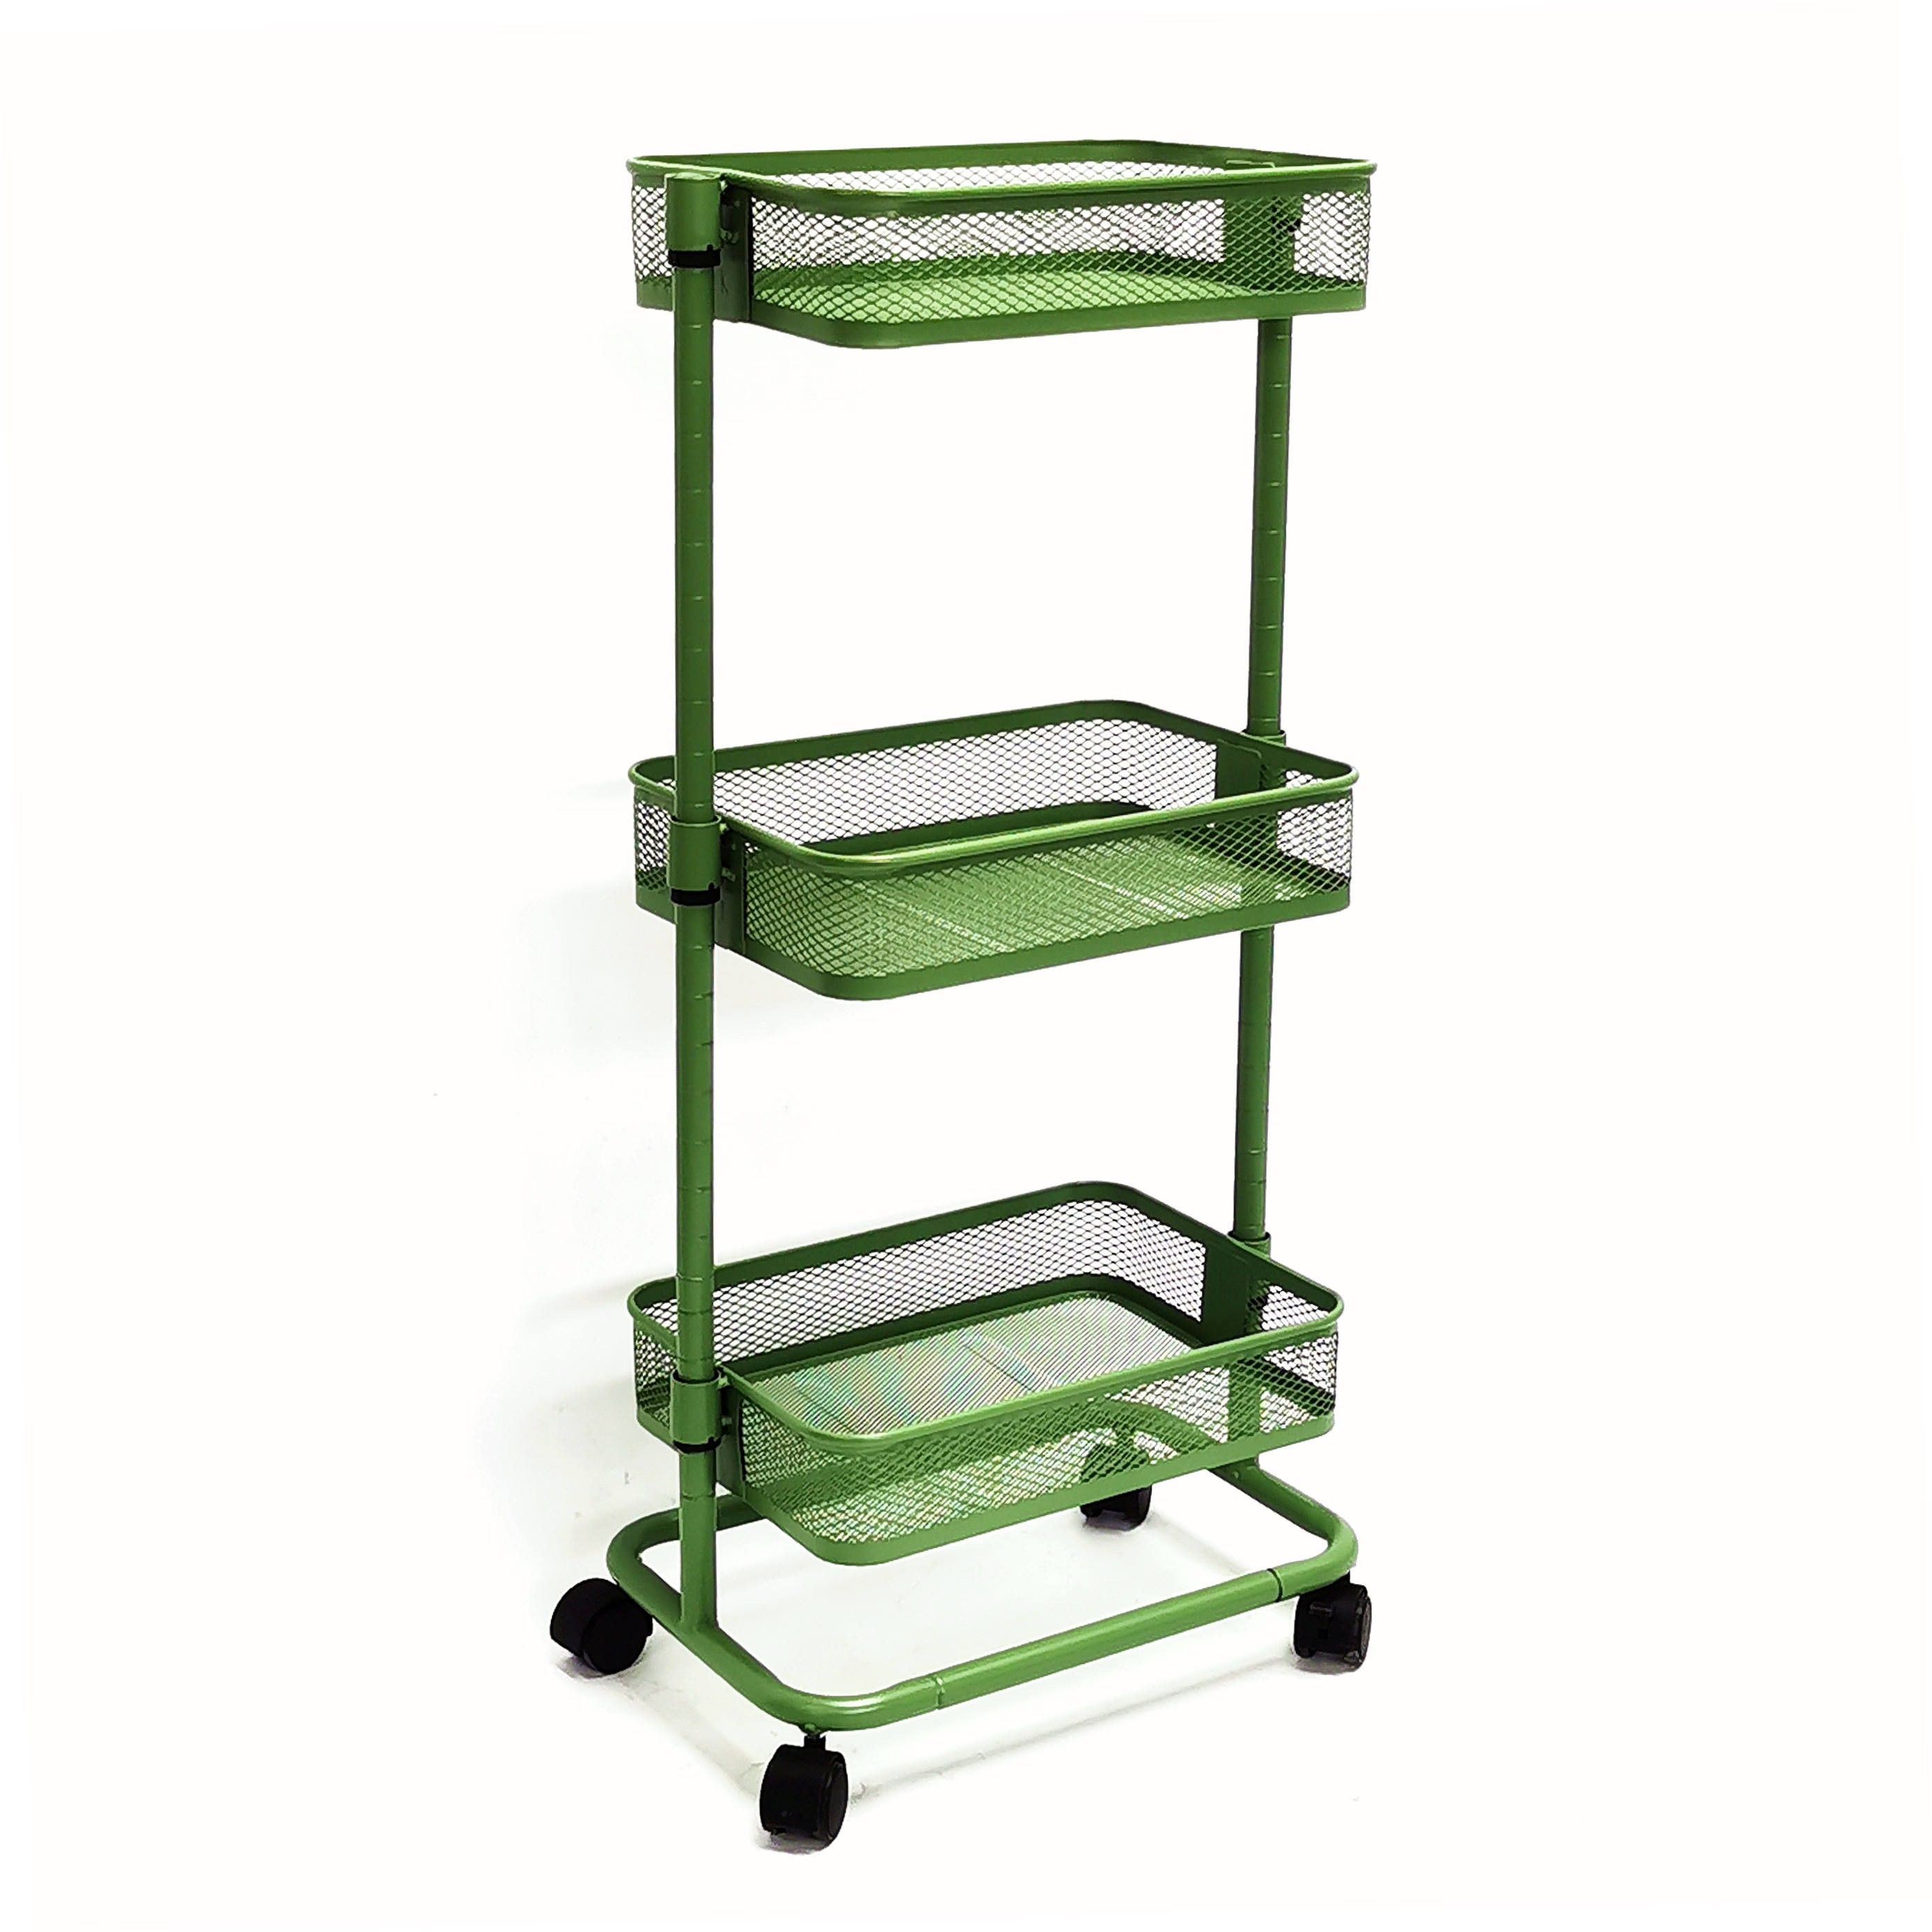 3-Tier Metal Rolling Utility Cart Rolling Kitchen Cart with Adjustable Shelves Easy Assembly Storage Trolley with Lockable Wheel